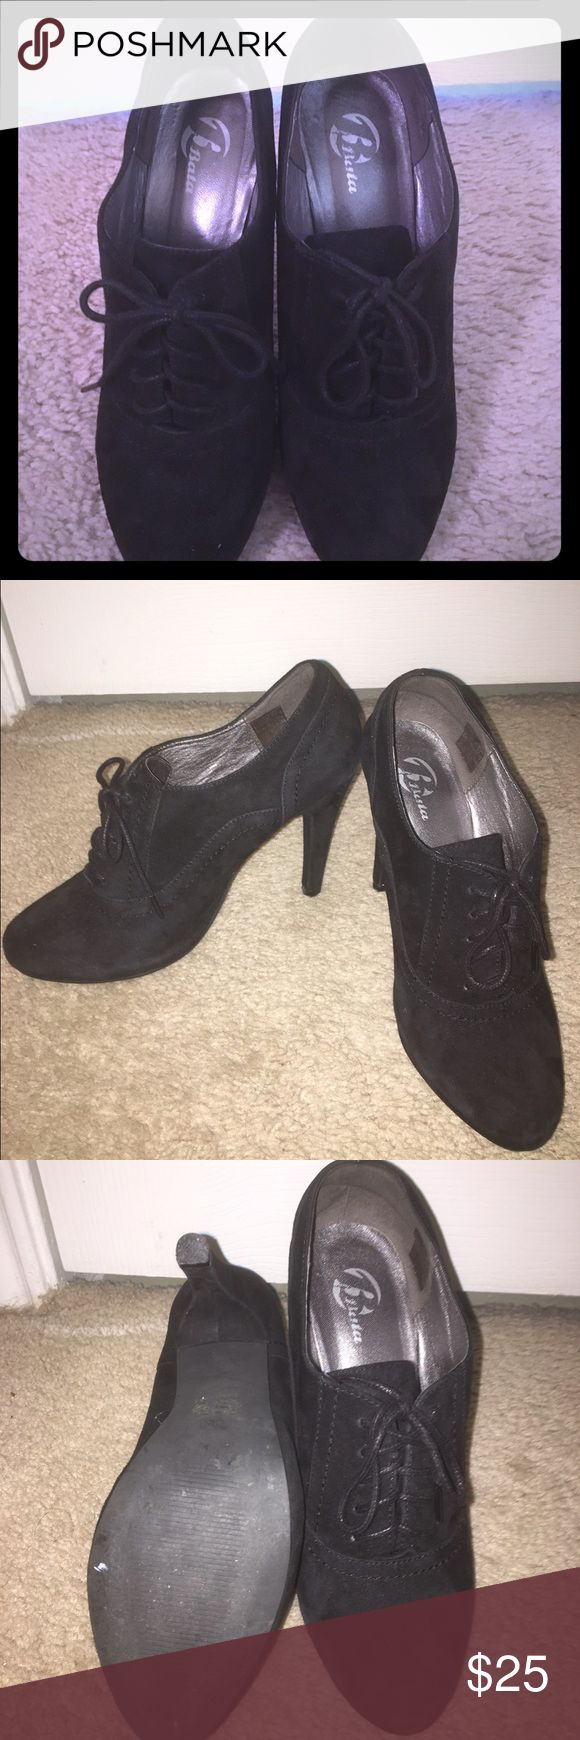 Black Italian Suede Oxford Heels! These are real Italian suede oxfords. They are super cute and can worn with many different styles. They are fantastic! Bata Shoes Ankle Boots & Booties